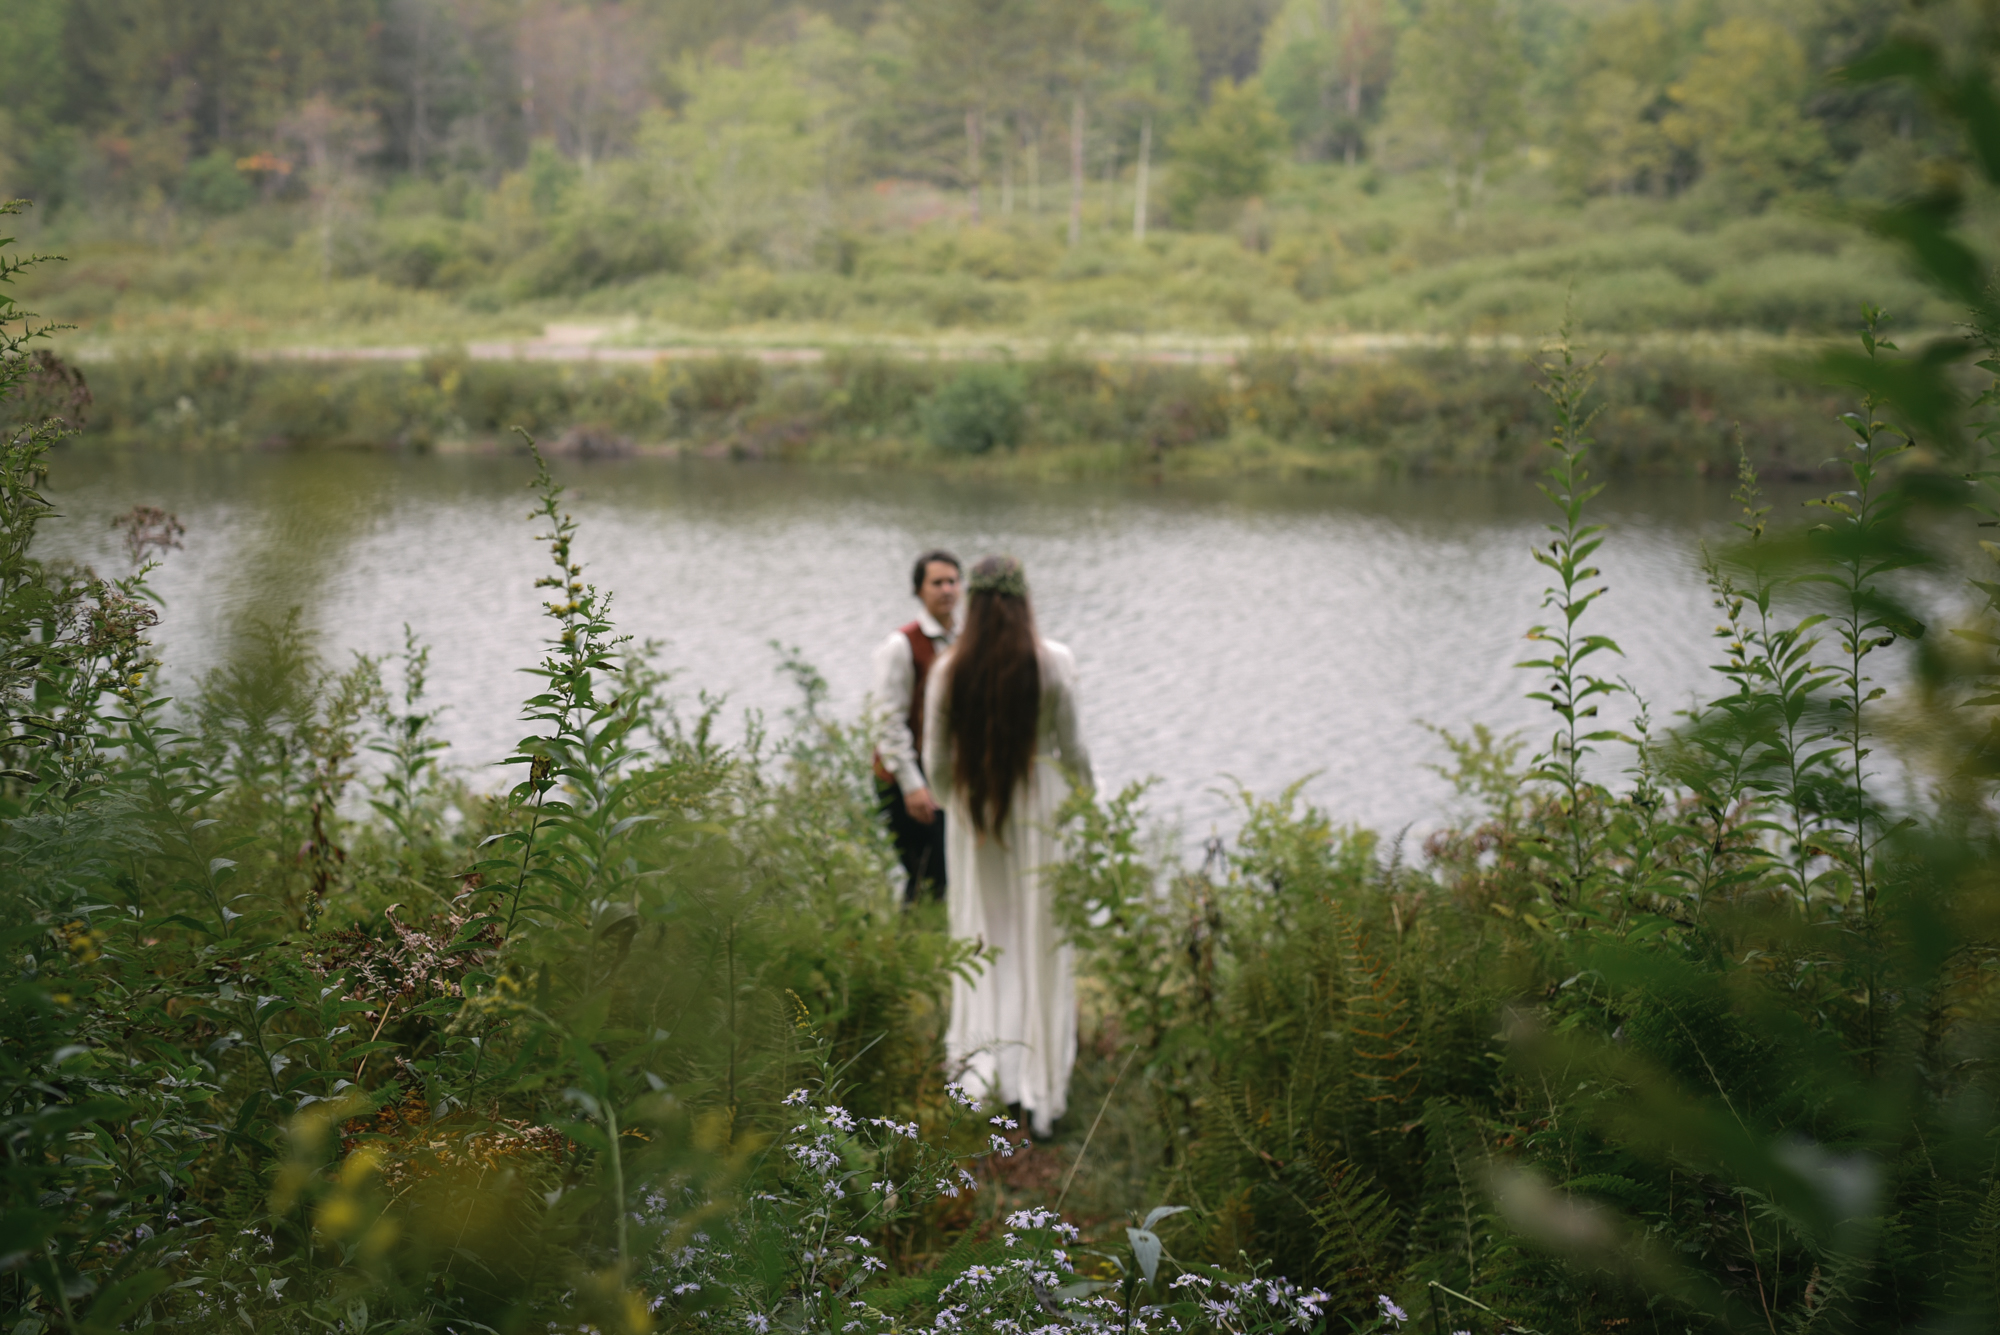 Mountain Wedding, Outdoors, Rustic, West Virginia, Maryland Wedding Photographer, DIY, Casual, candid photo of bride and groom walking in woods towards river, Blackwater River